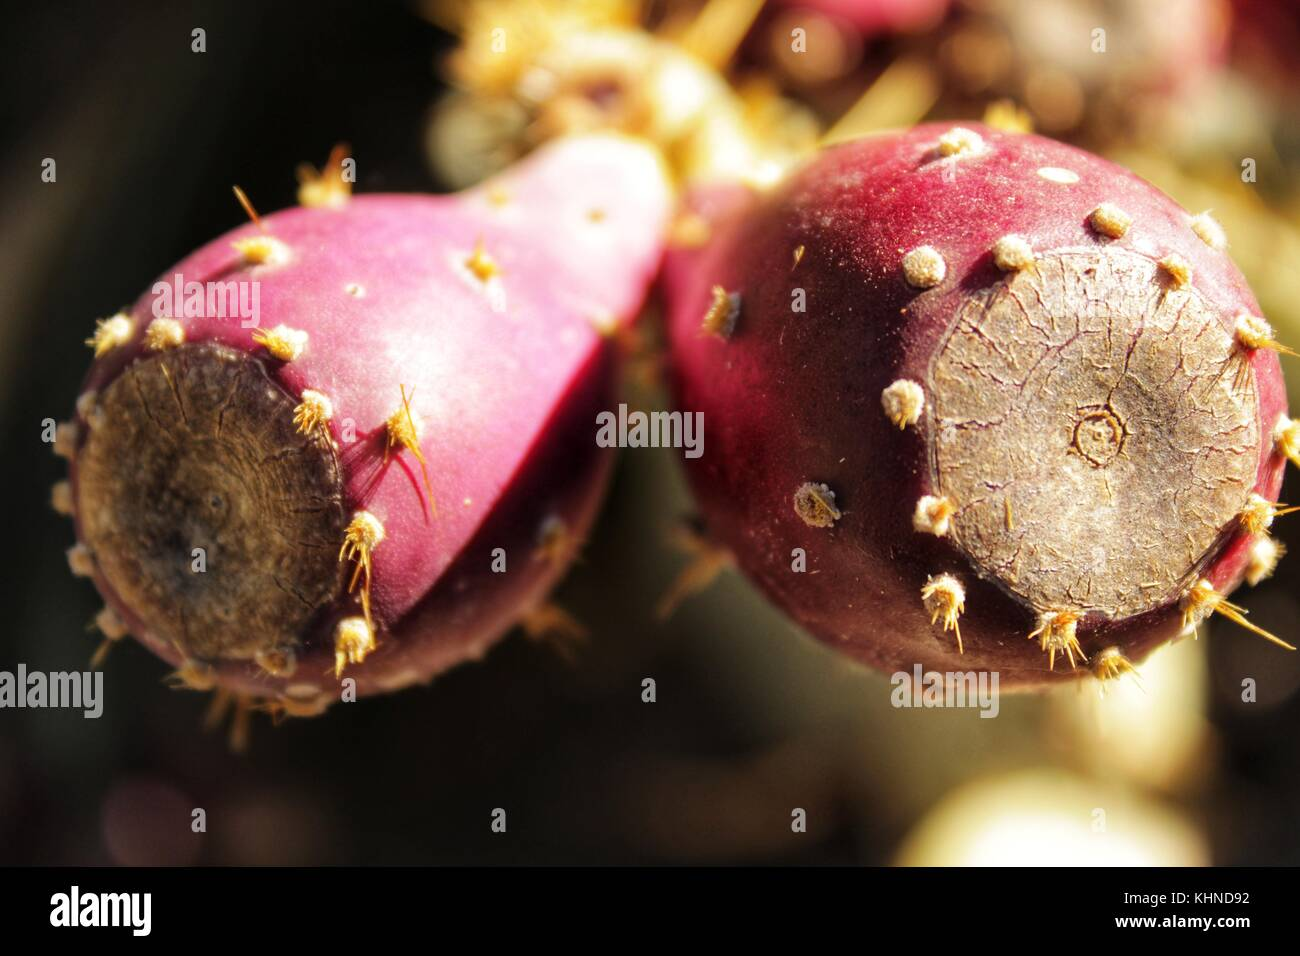 Prickly pears growing in the cactus - Stock Image